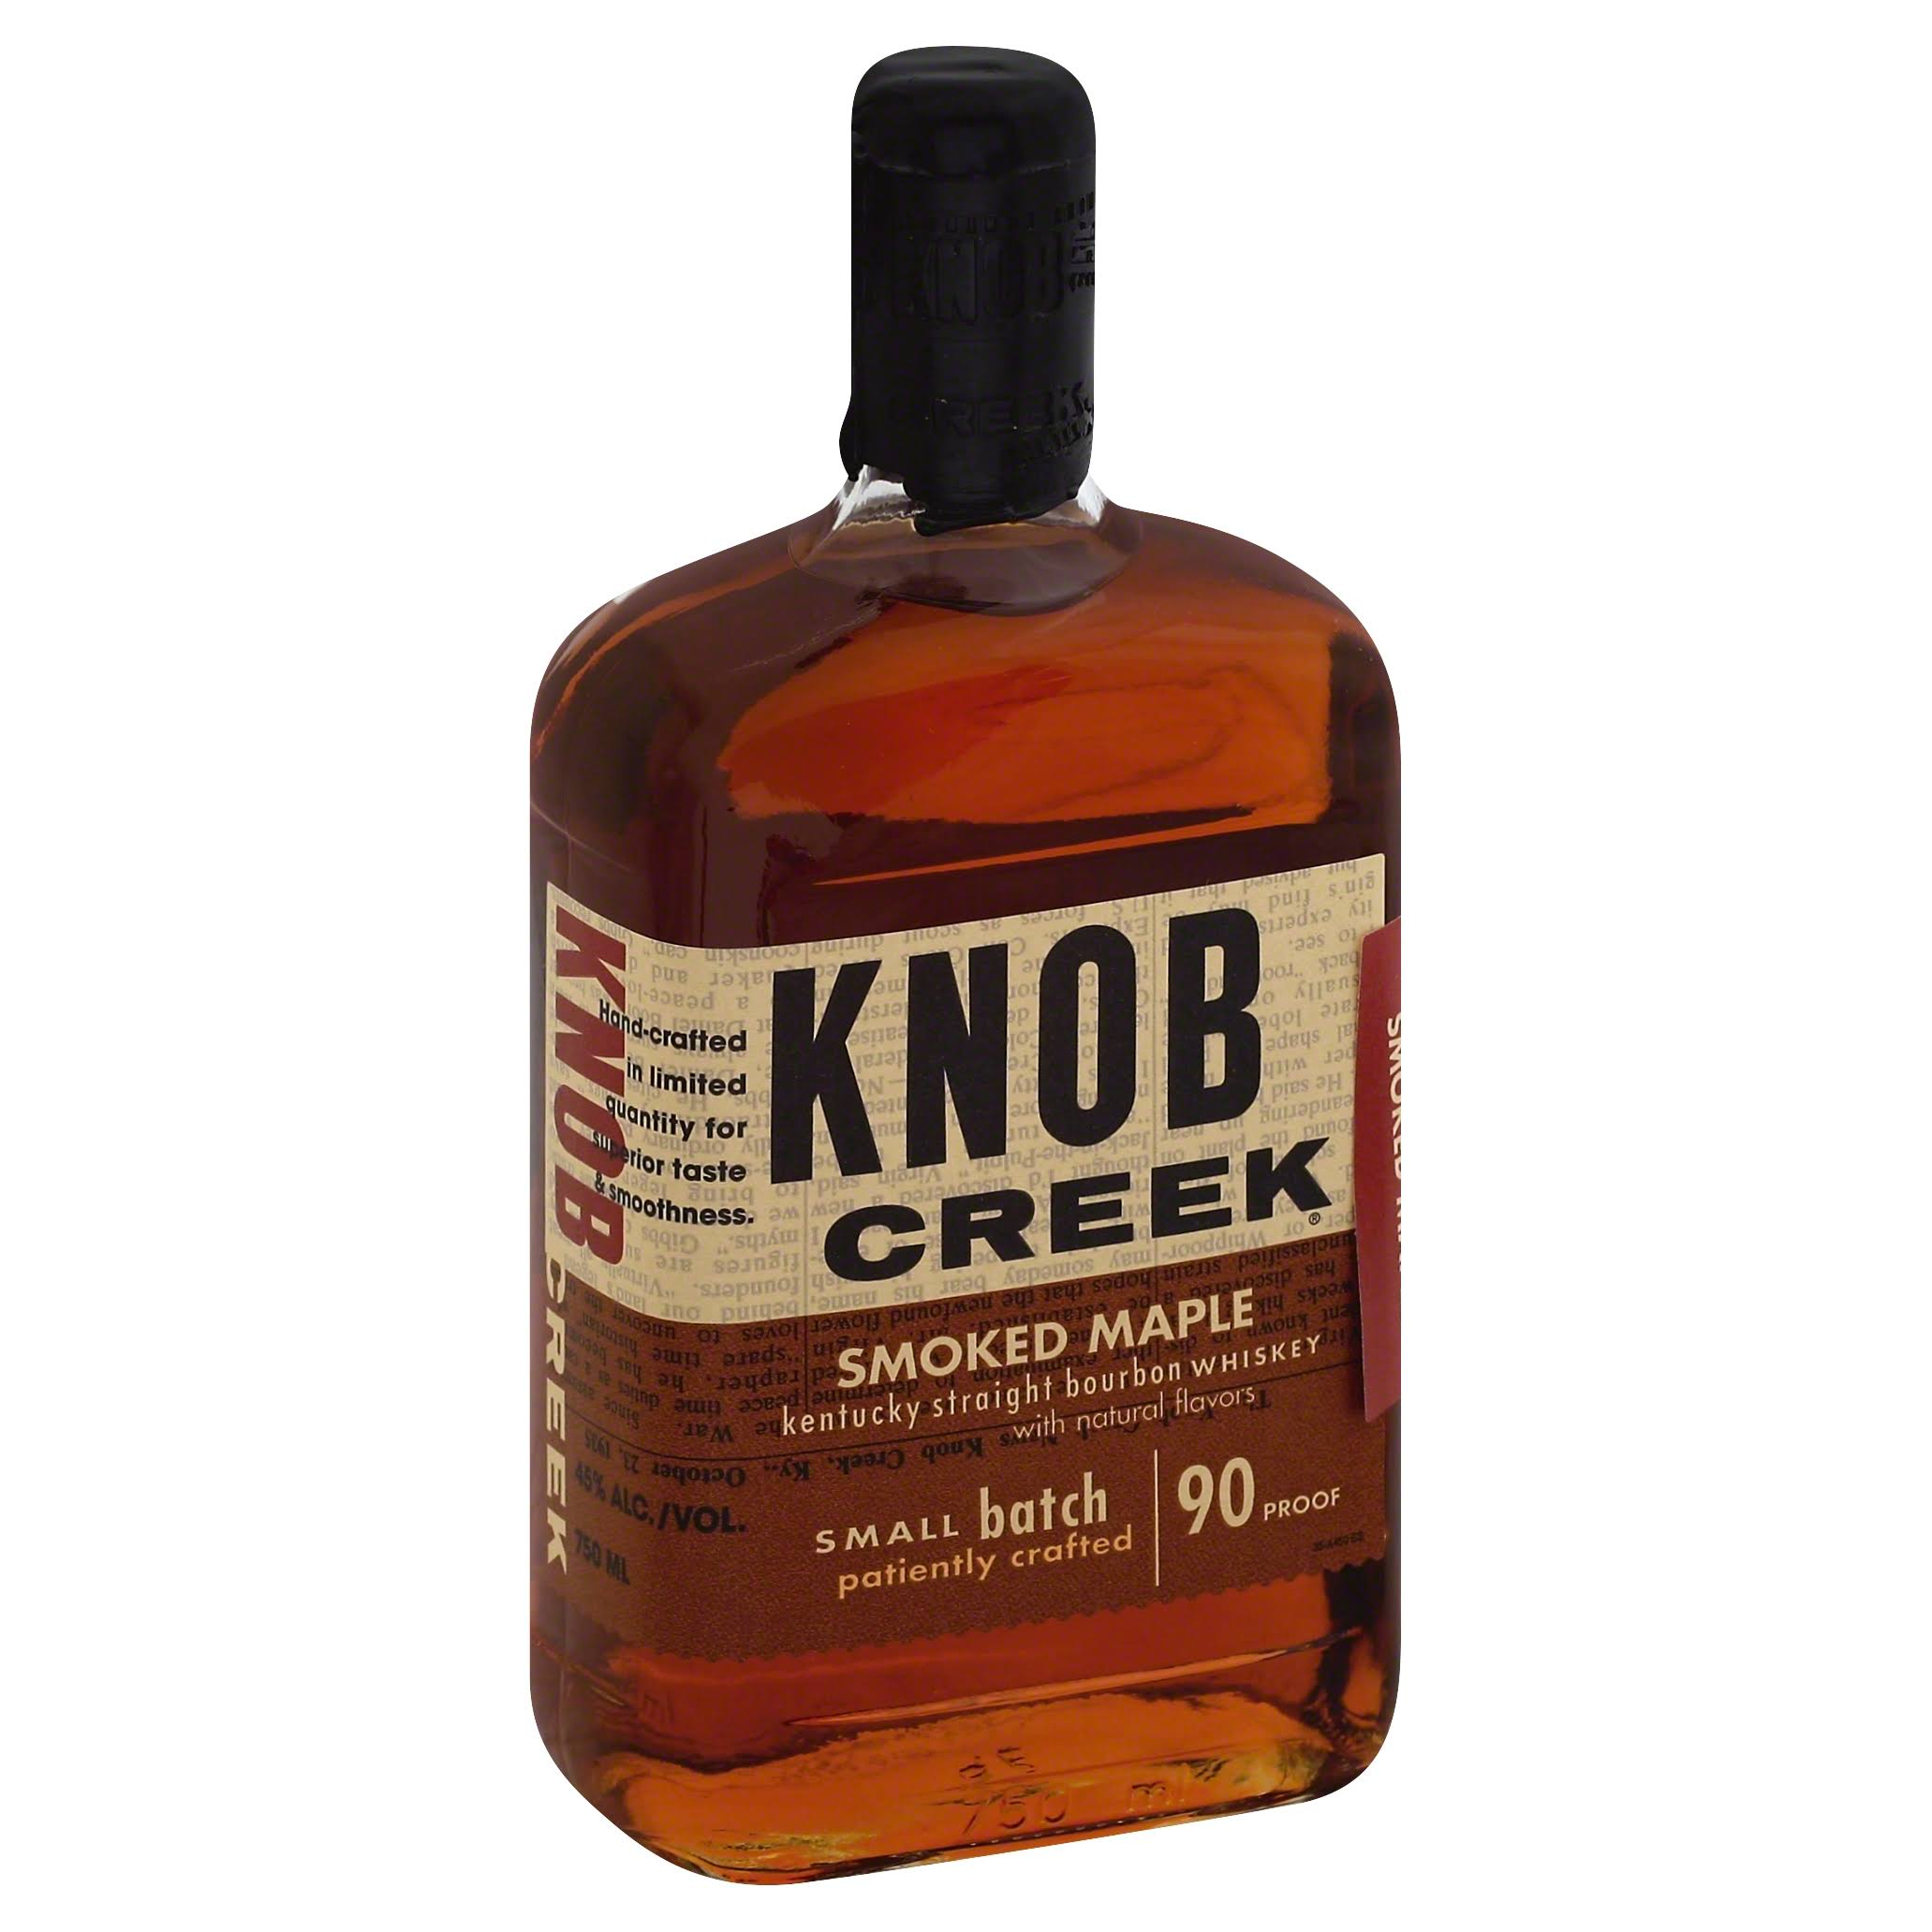 Knob Creek Smoked Maple Kentucky Straight Bourbon Whiskey